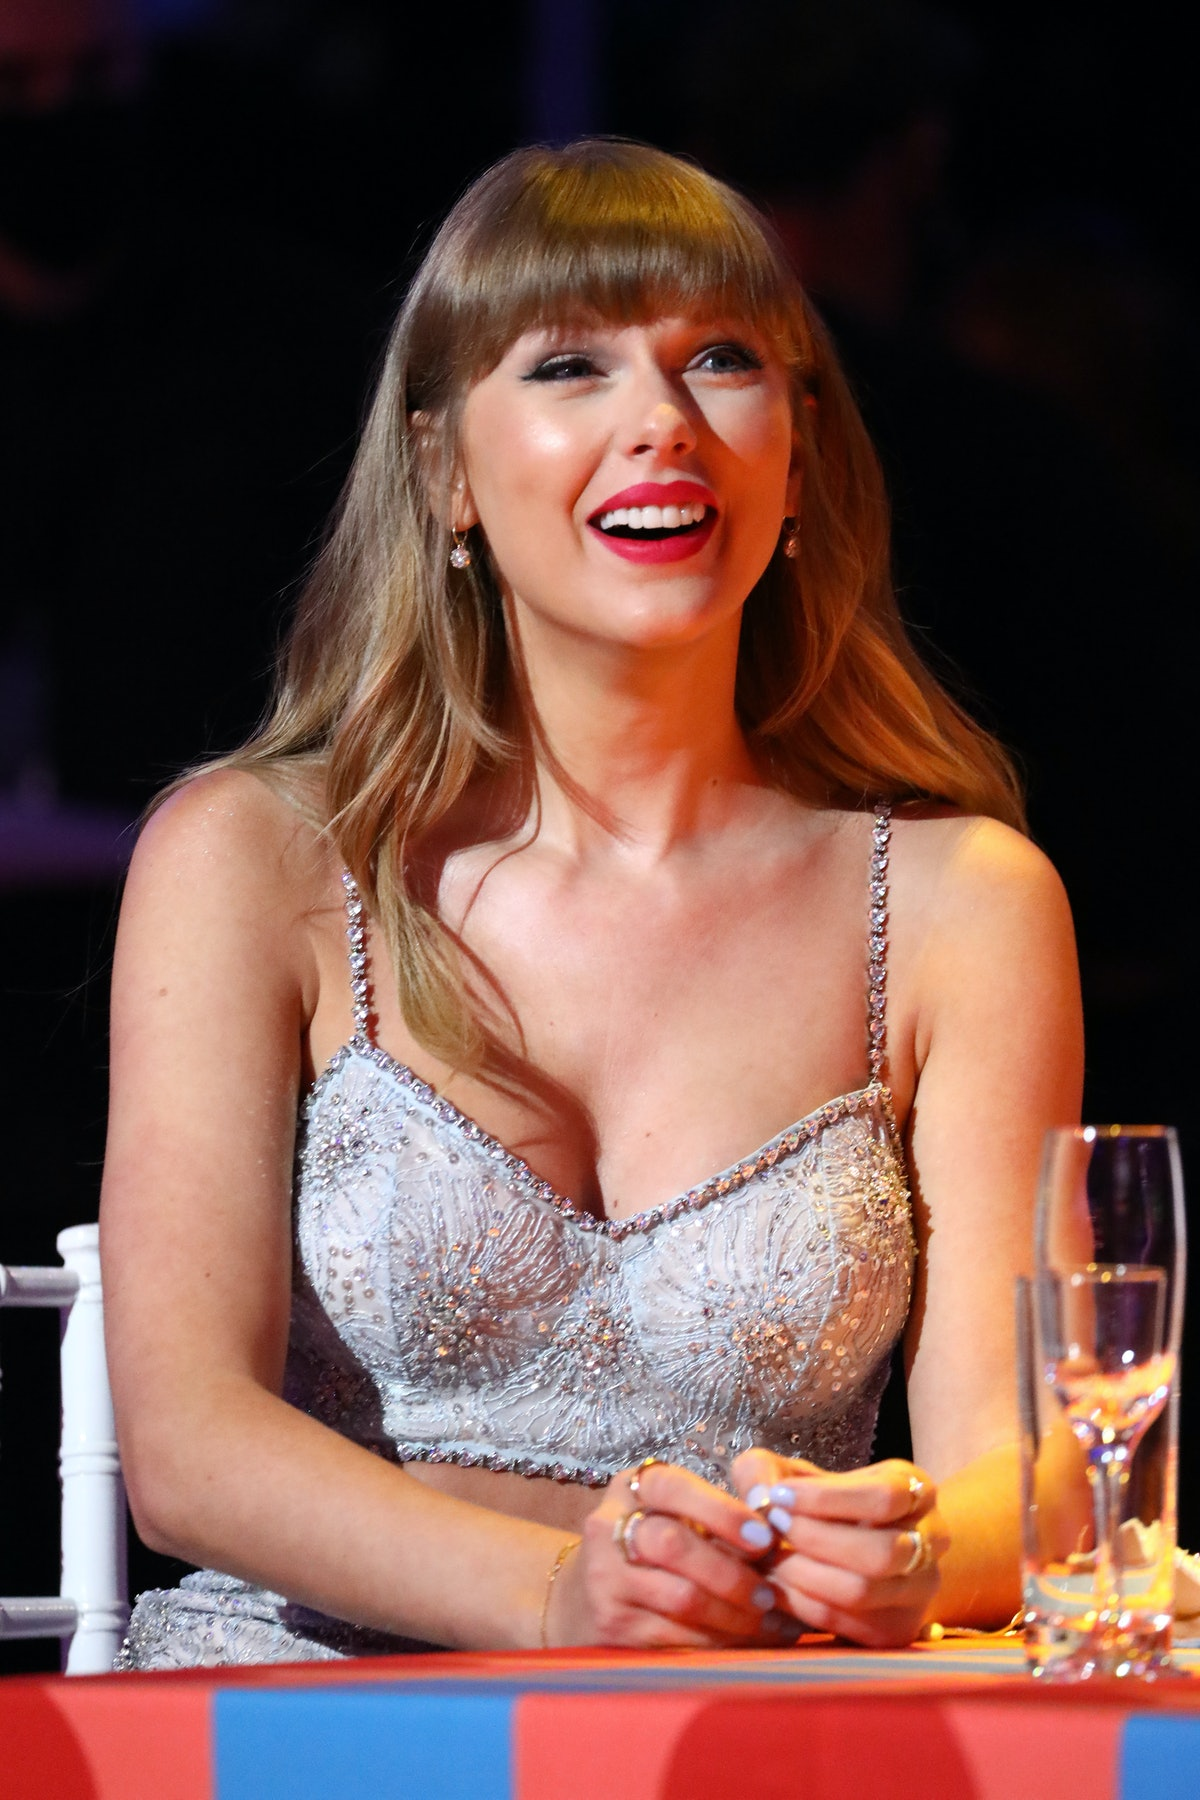 Taylor Swift wearing a sequined, beaded crop top and wearing her hair with blunt bangs at the BRIT A...